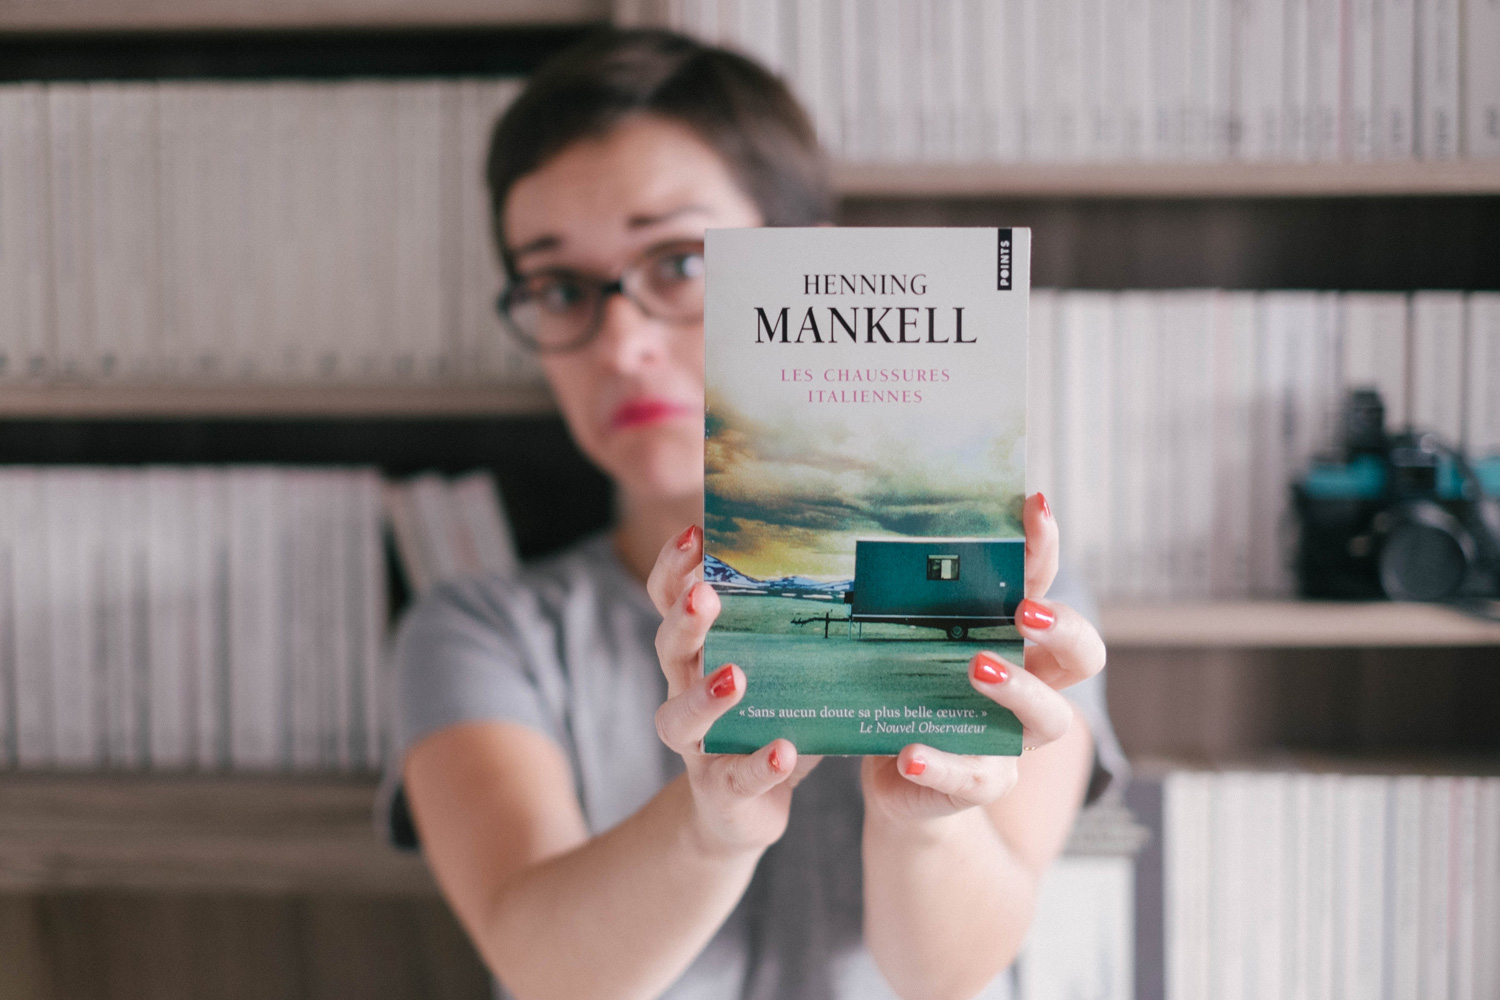 les chaussures italiennes mankell